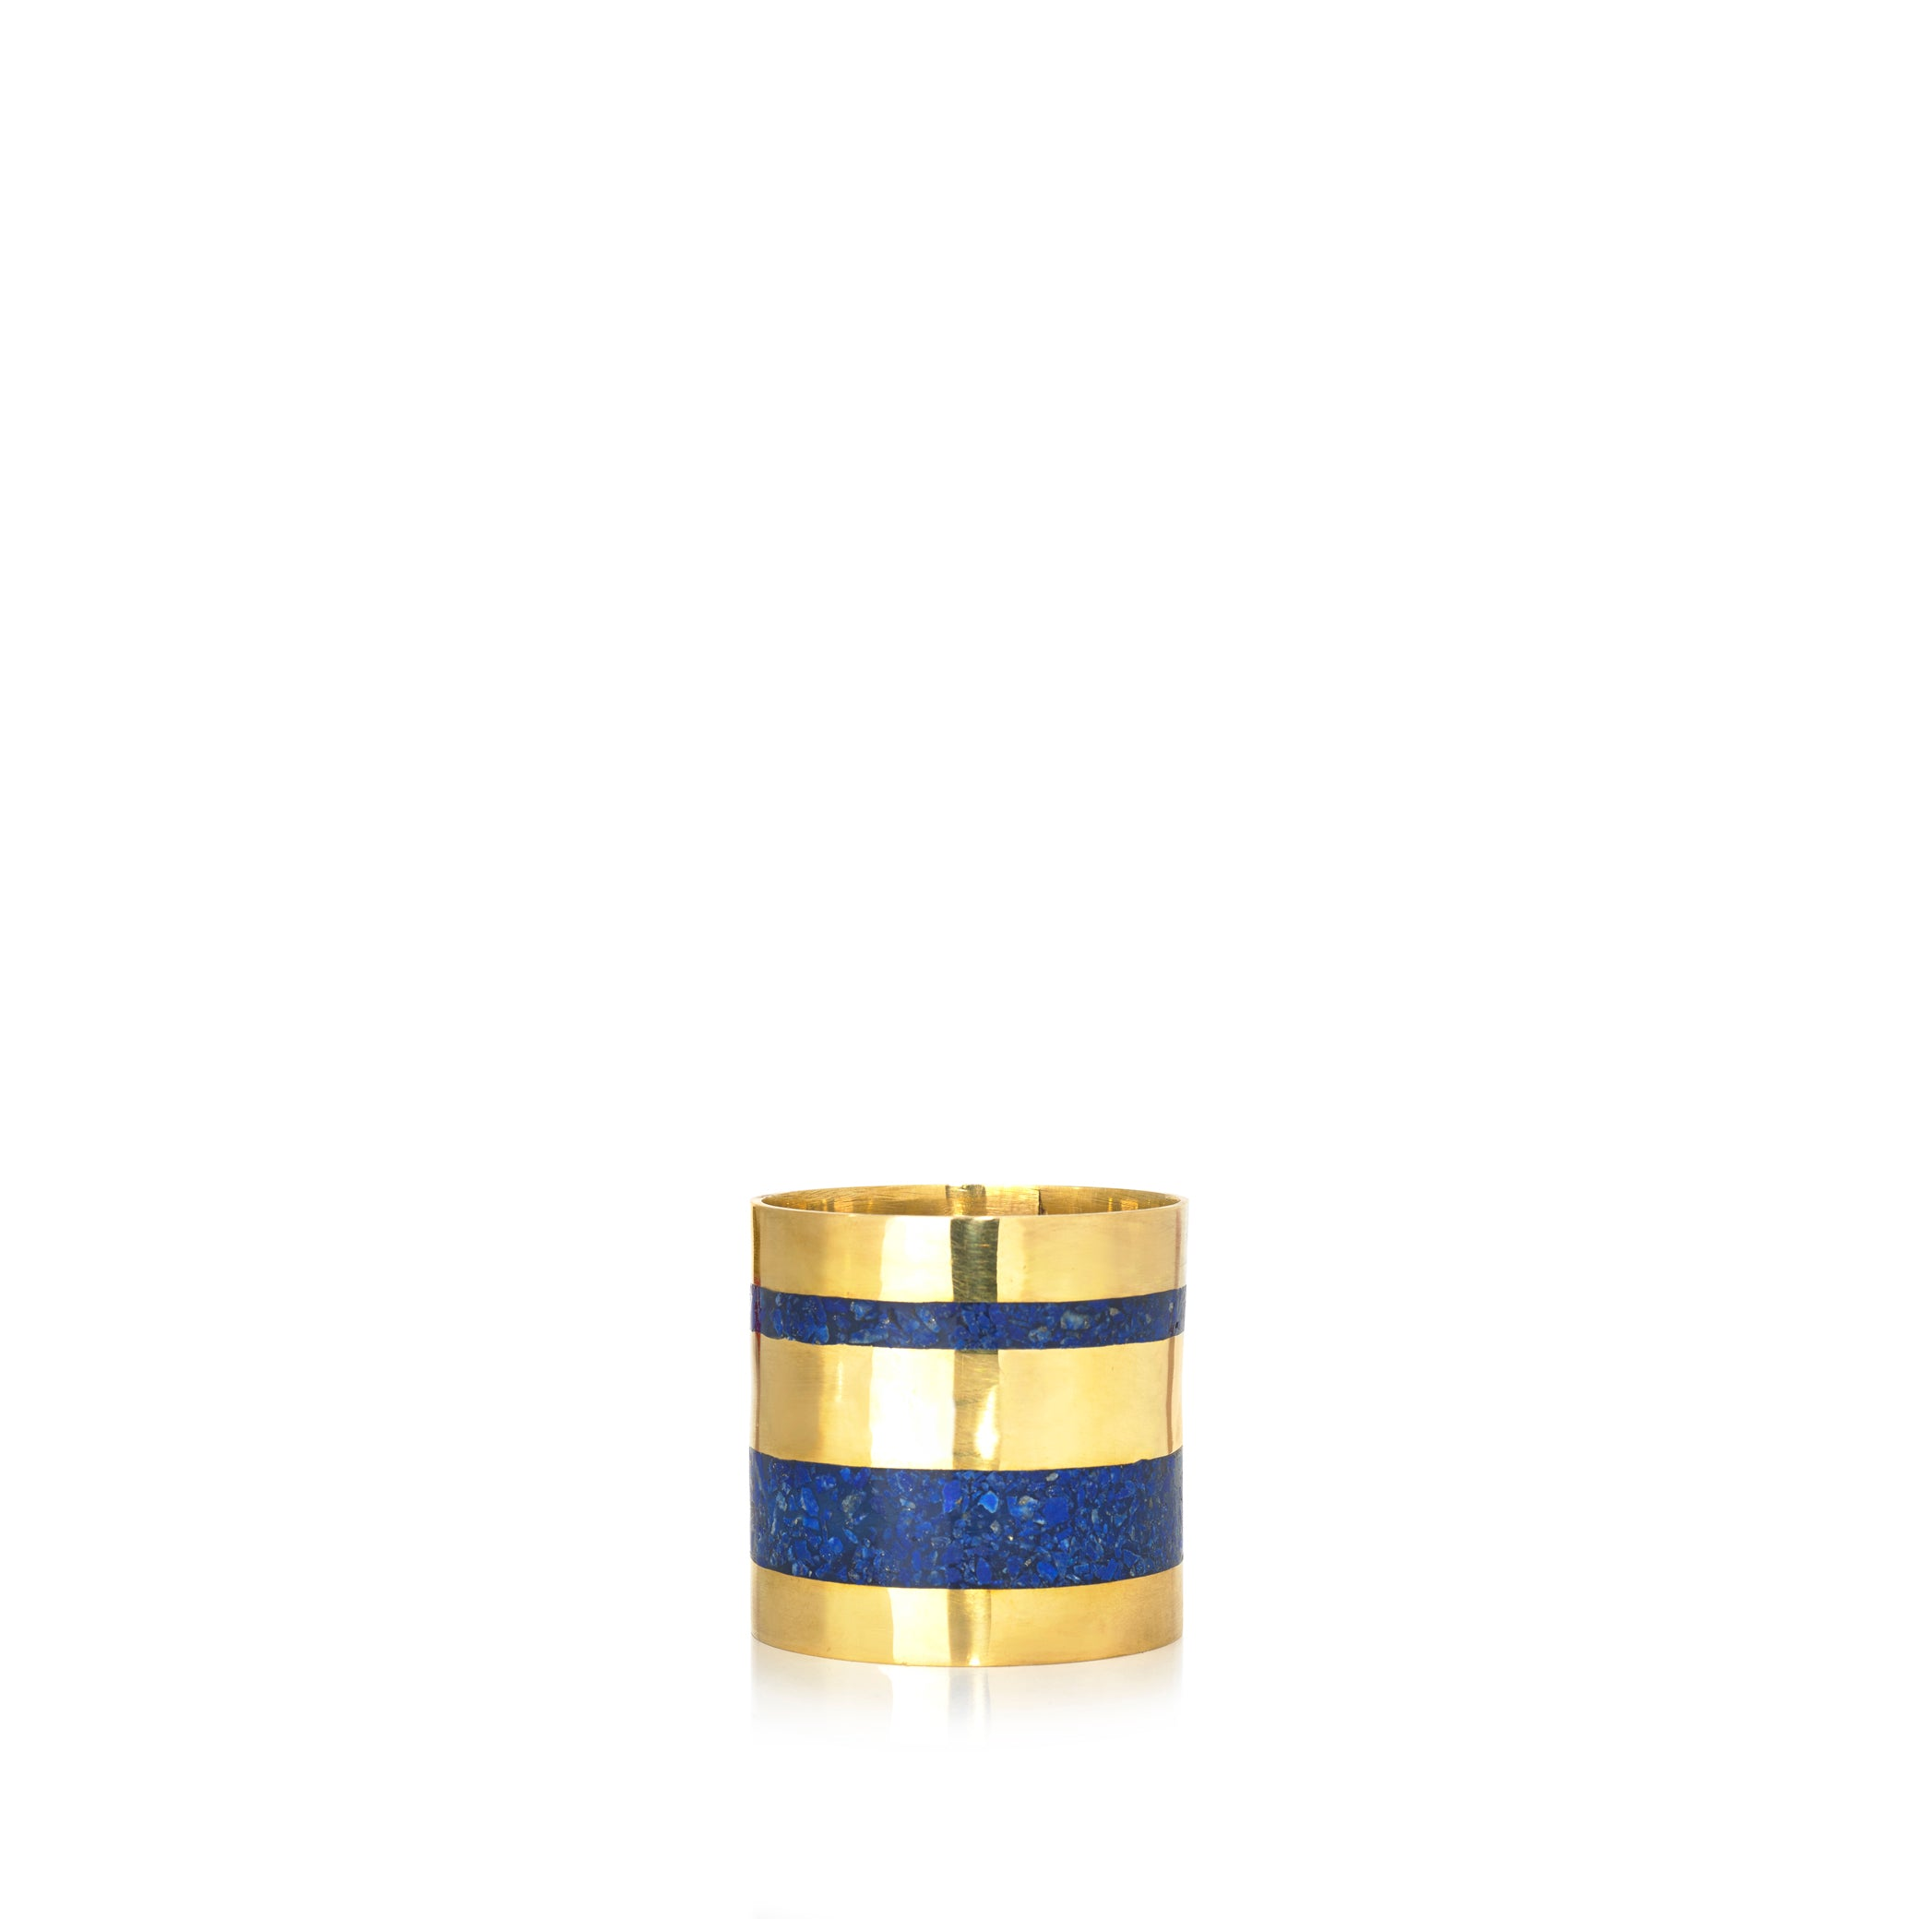 S&B x Pippa Small Lapis Inlaid Napkin Ring, Horizontal Double Stripe